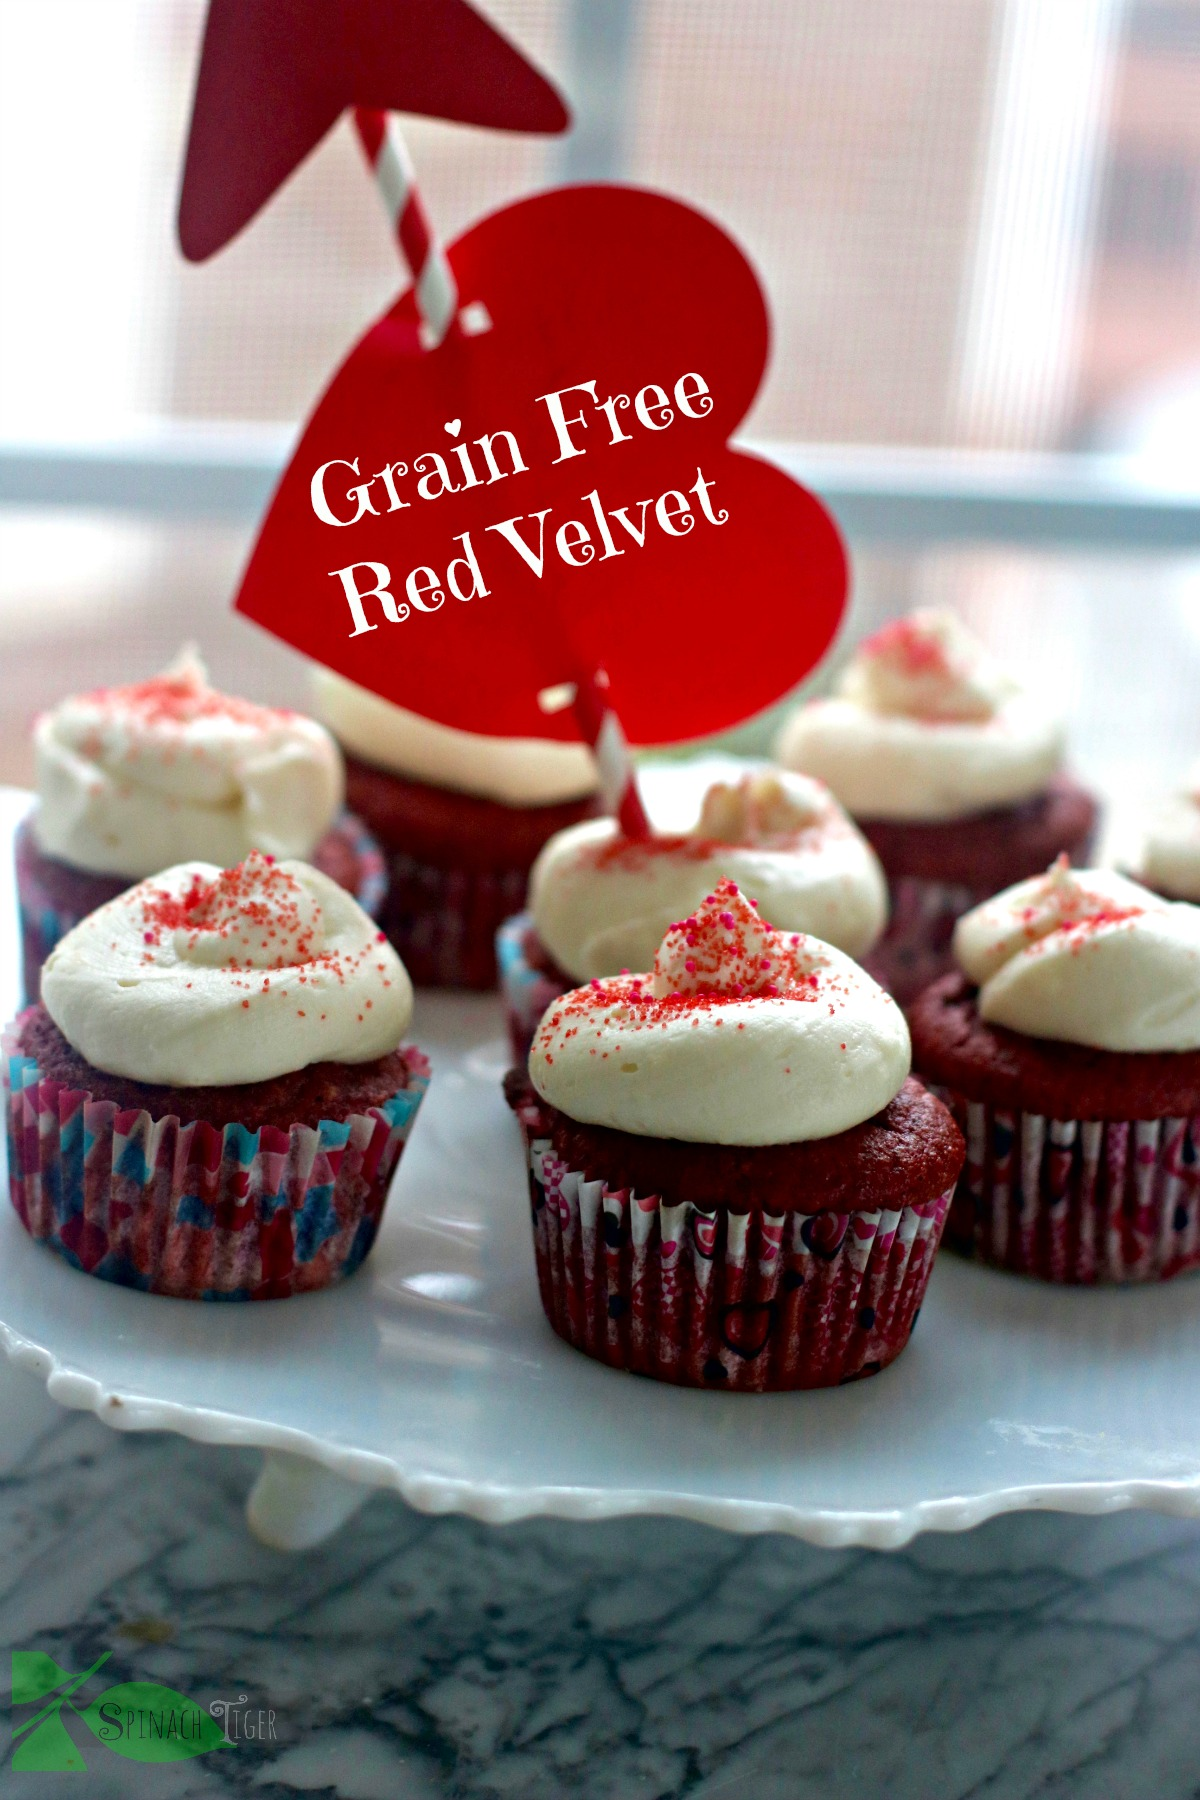 The Best keto red velvet recipe, most popular in my keto bakery. #ketoredvelvet #lowcarbredvelvet #grainfreeredvelvet via @angelaroberts